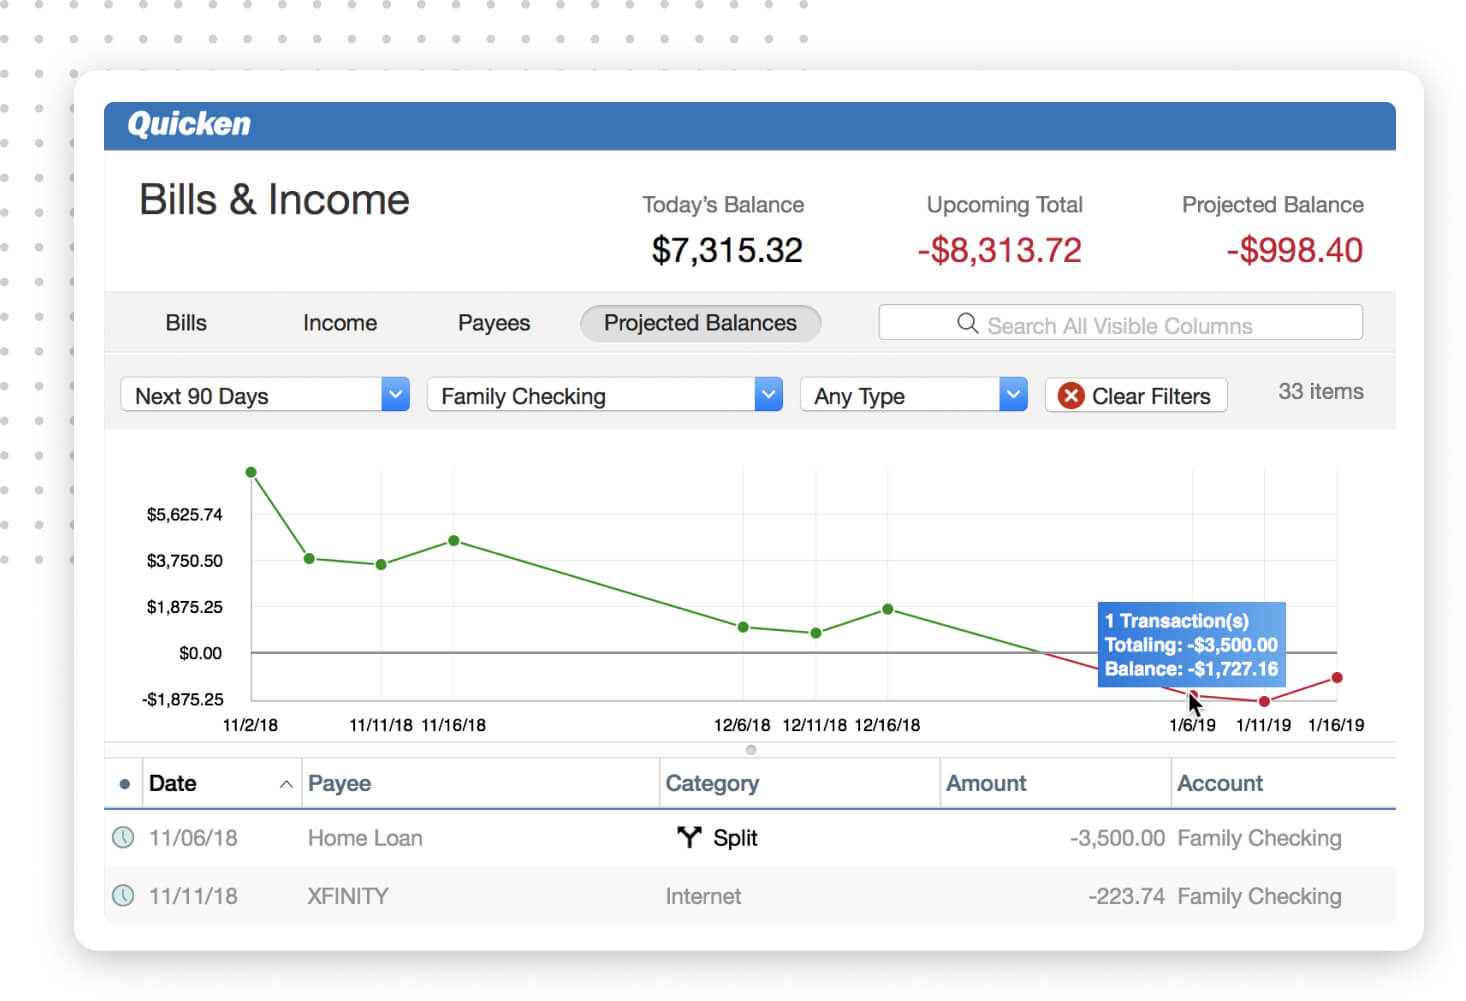 predictive chart for bills and income